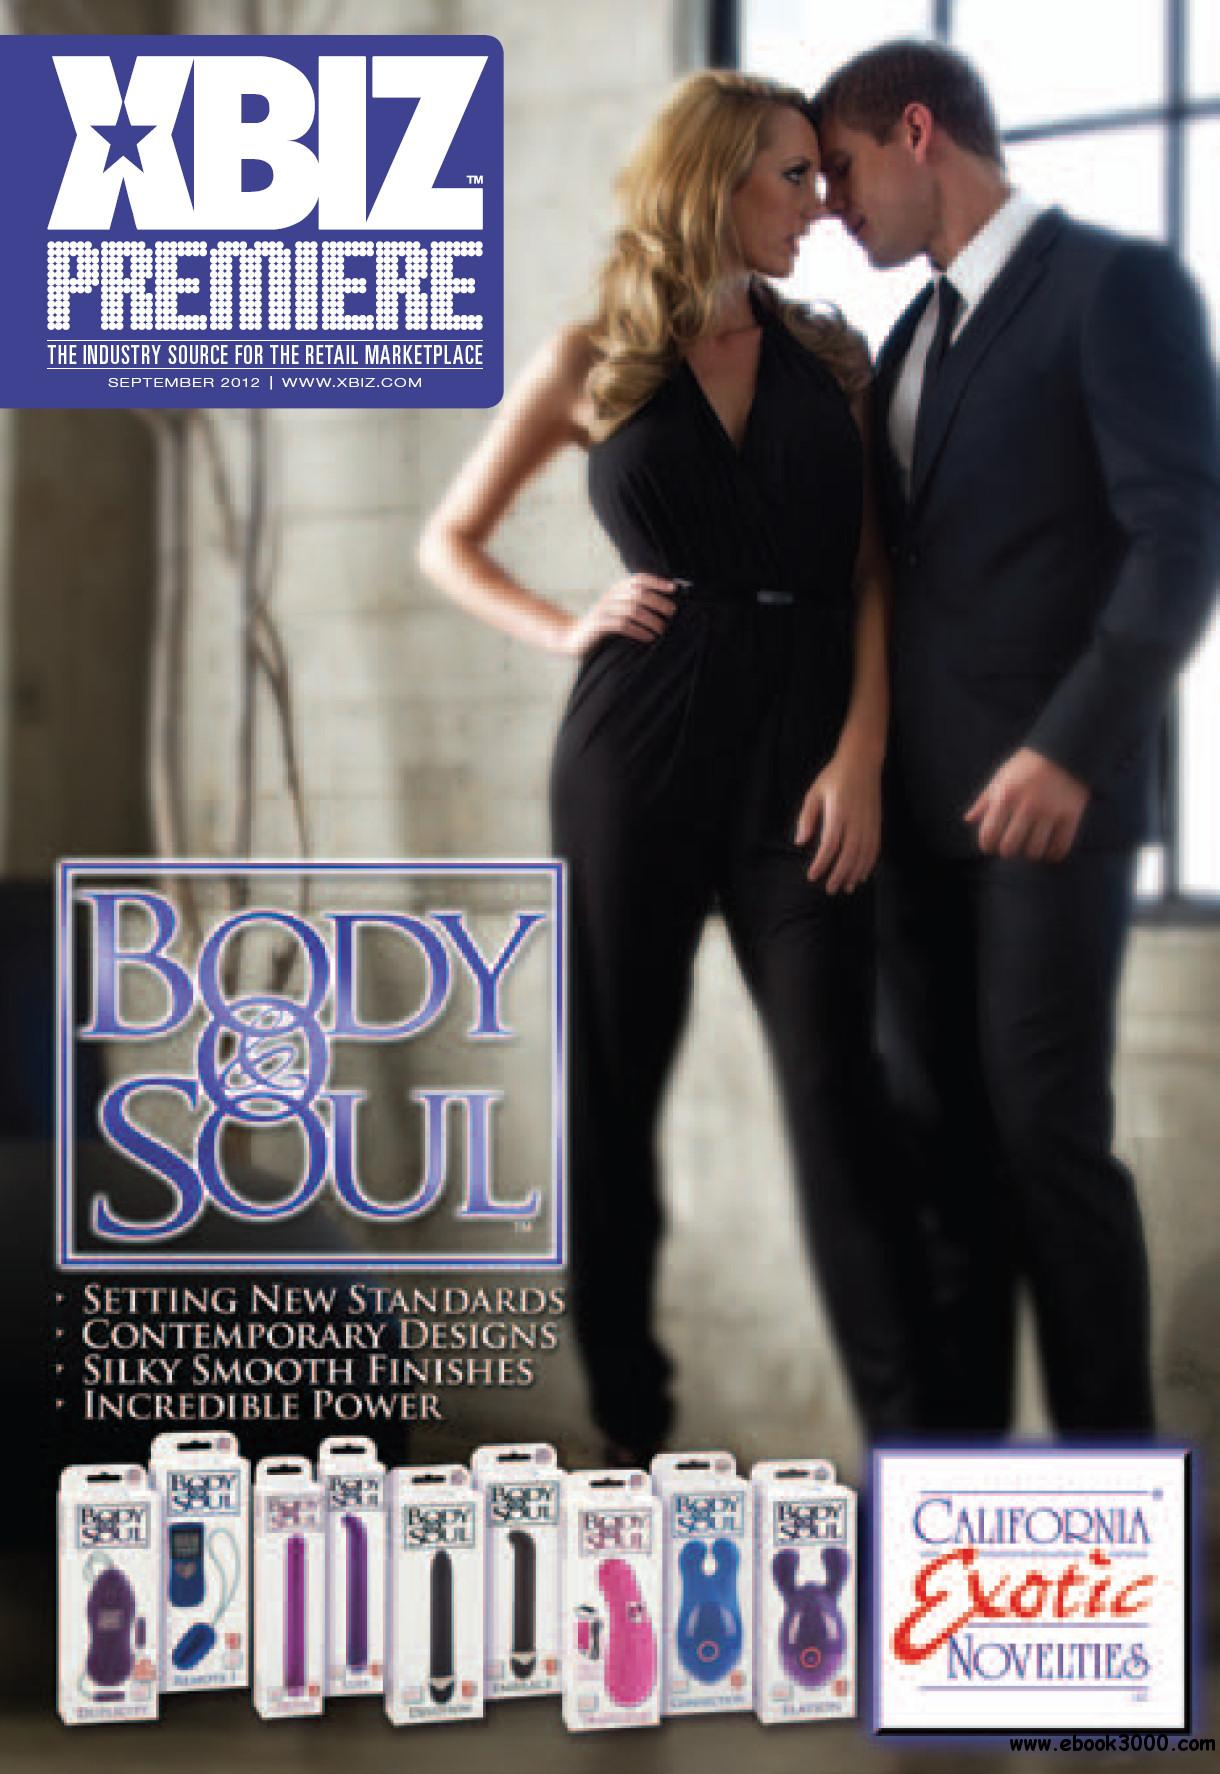 XBIZ Premiere - September 2012 free download